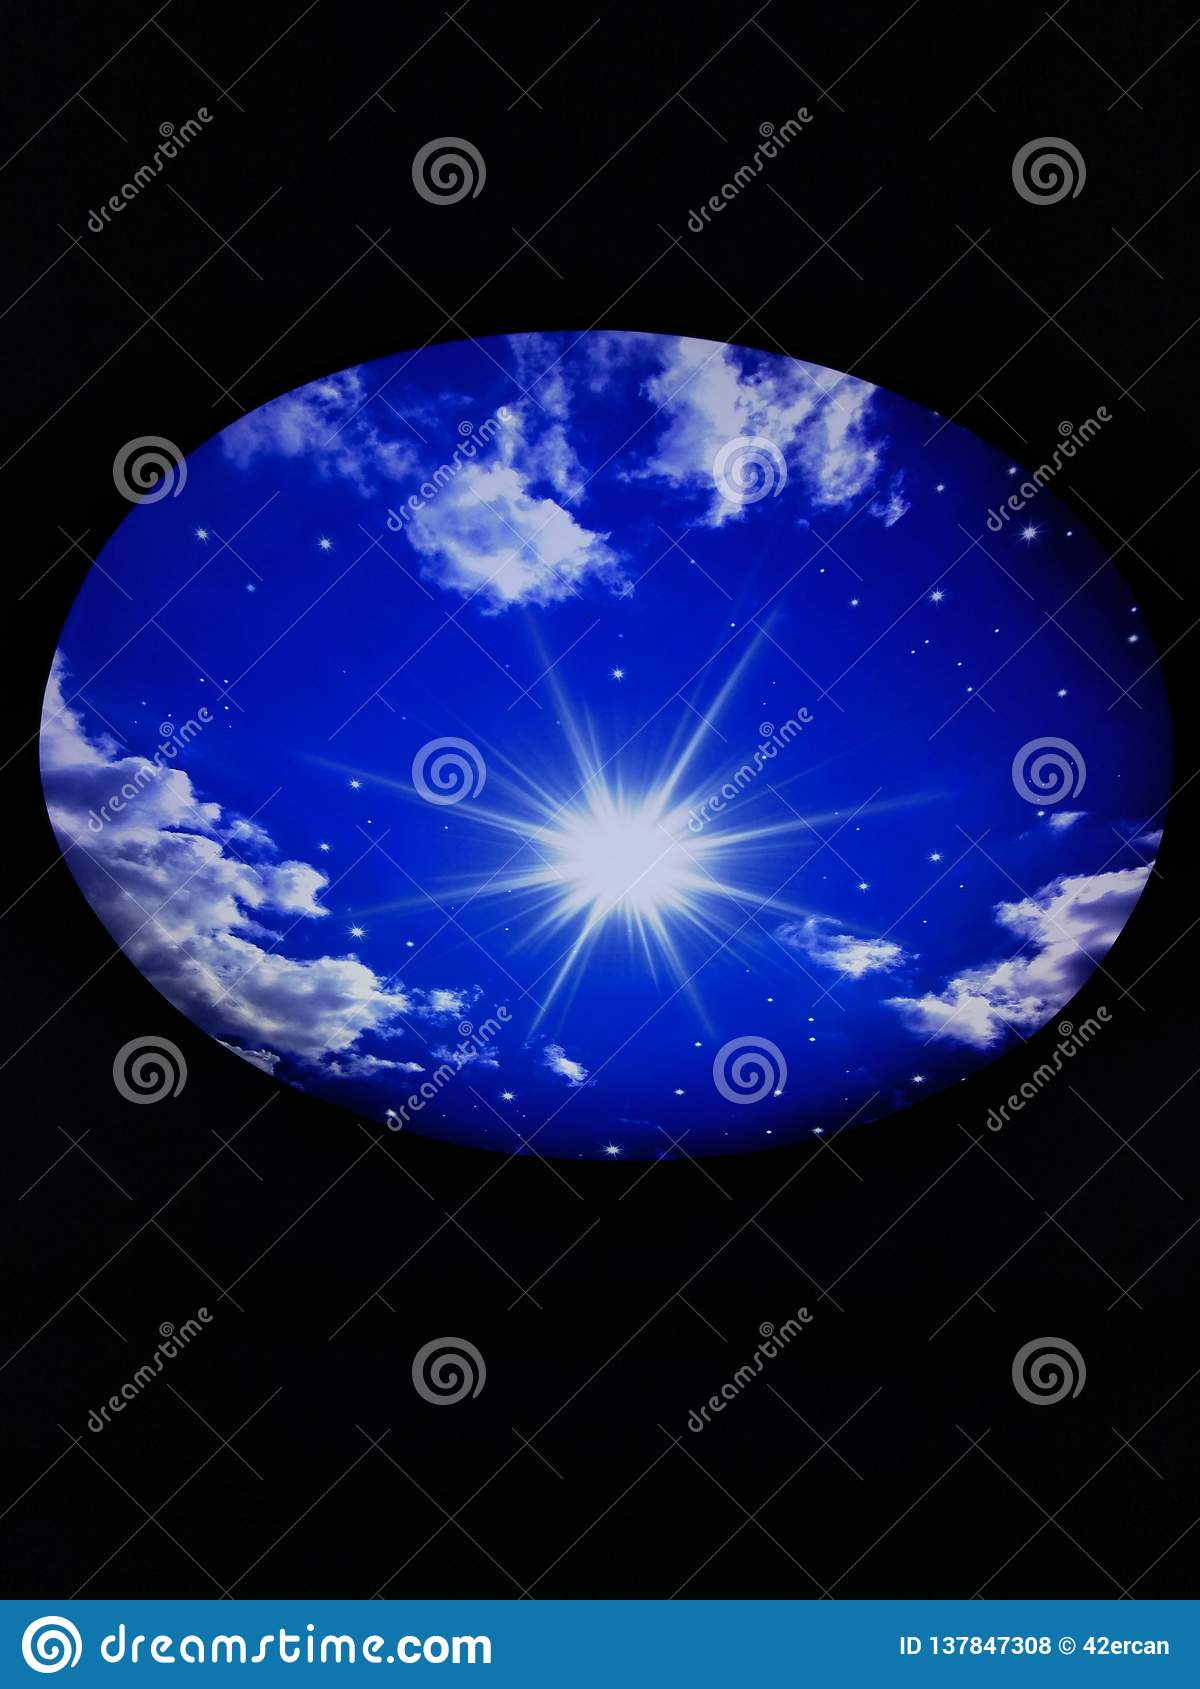 Galaxy roof lamp stock photo  Image of hill, jungel - 137847308